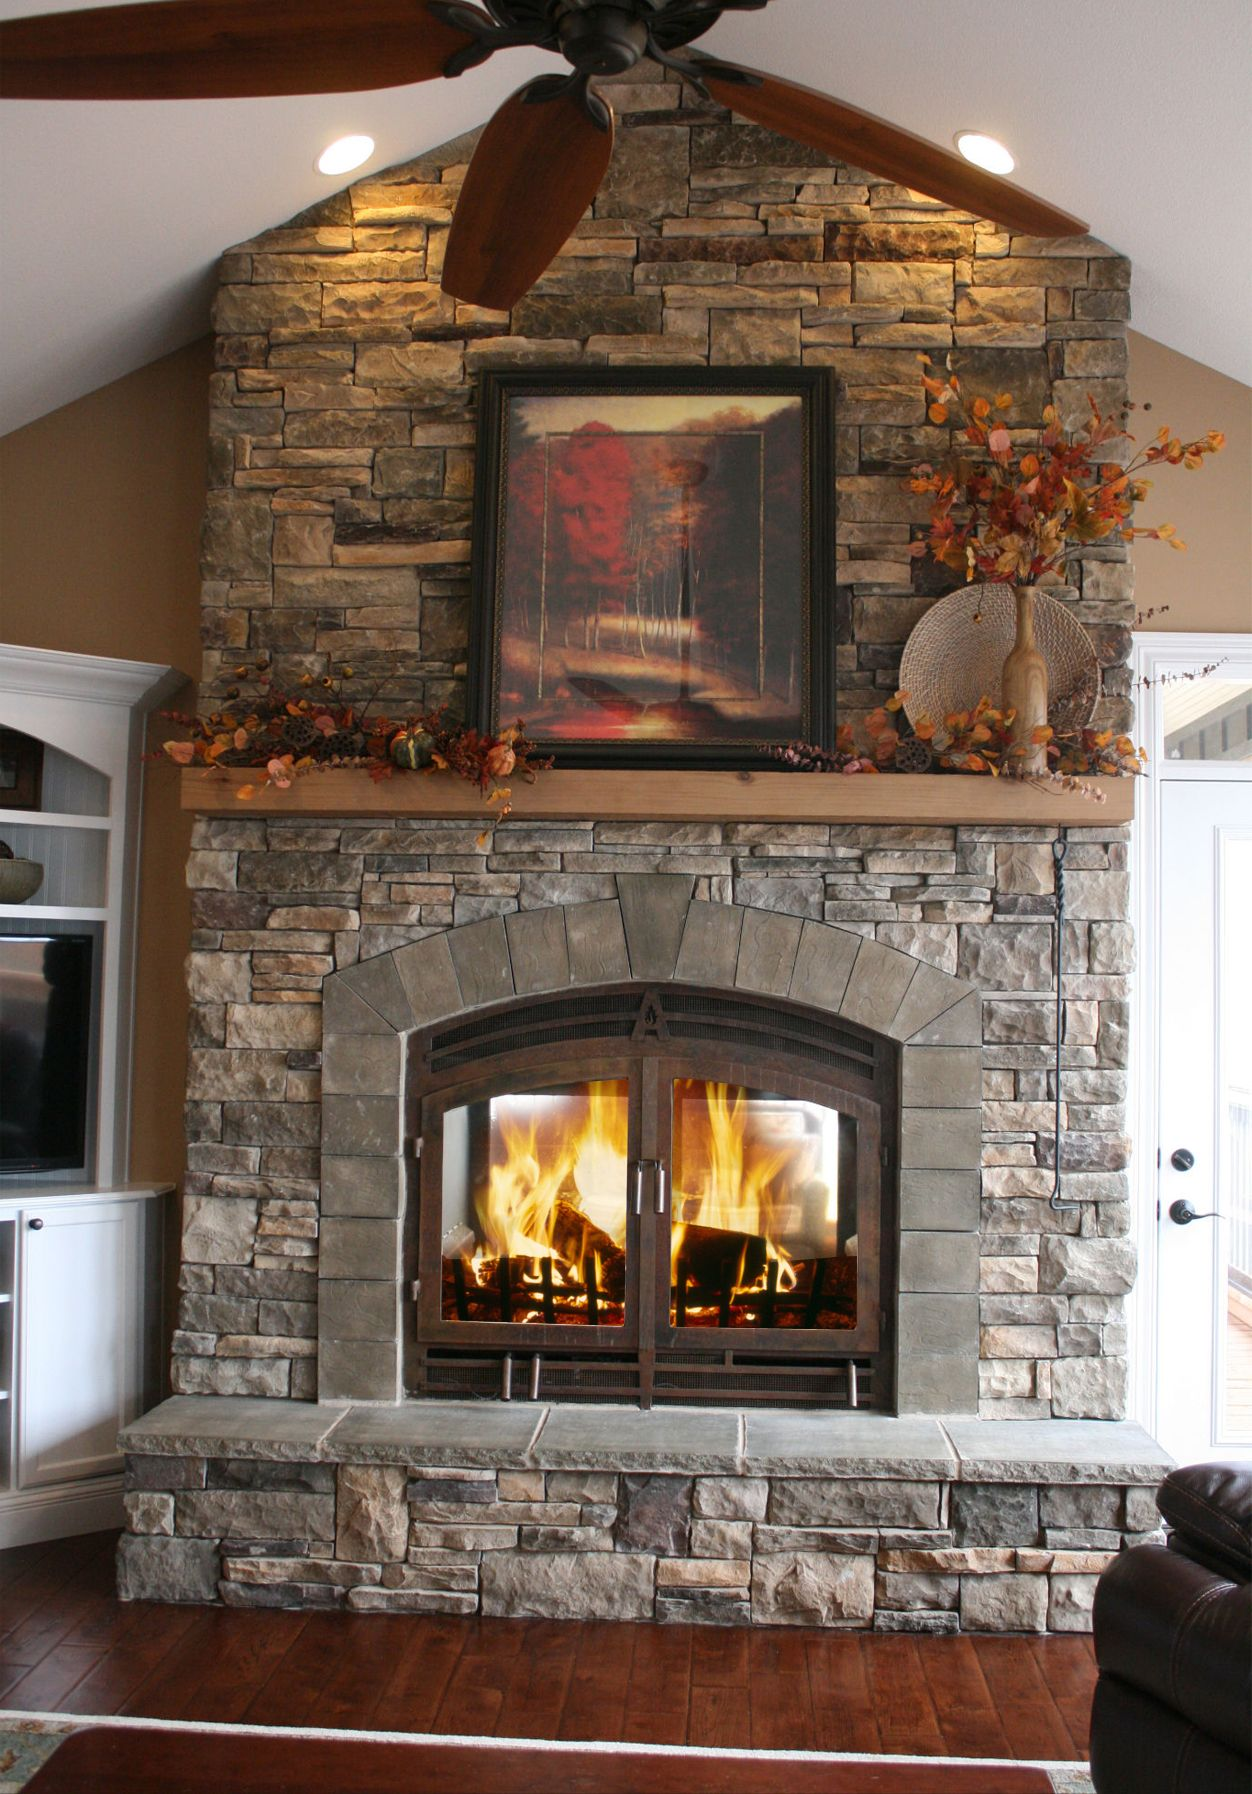 FloortoCeiling stone fireplace with fullwidth wood mantel